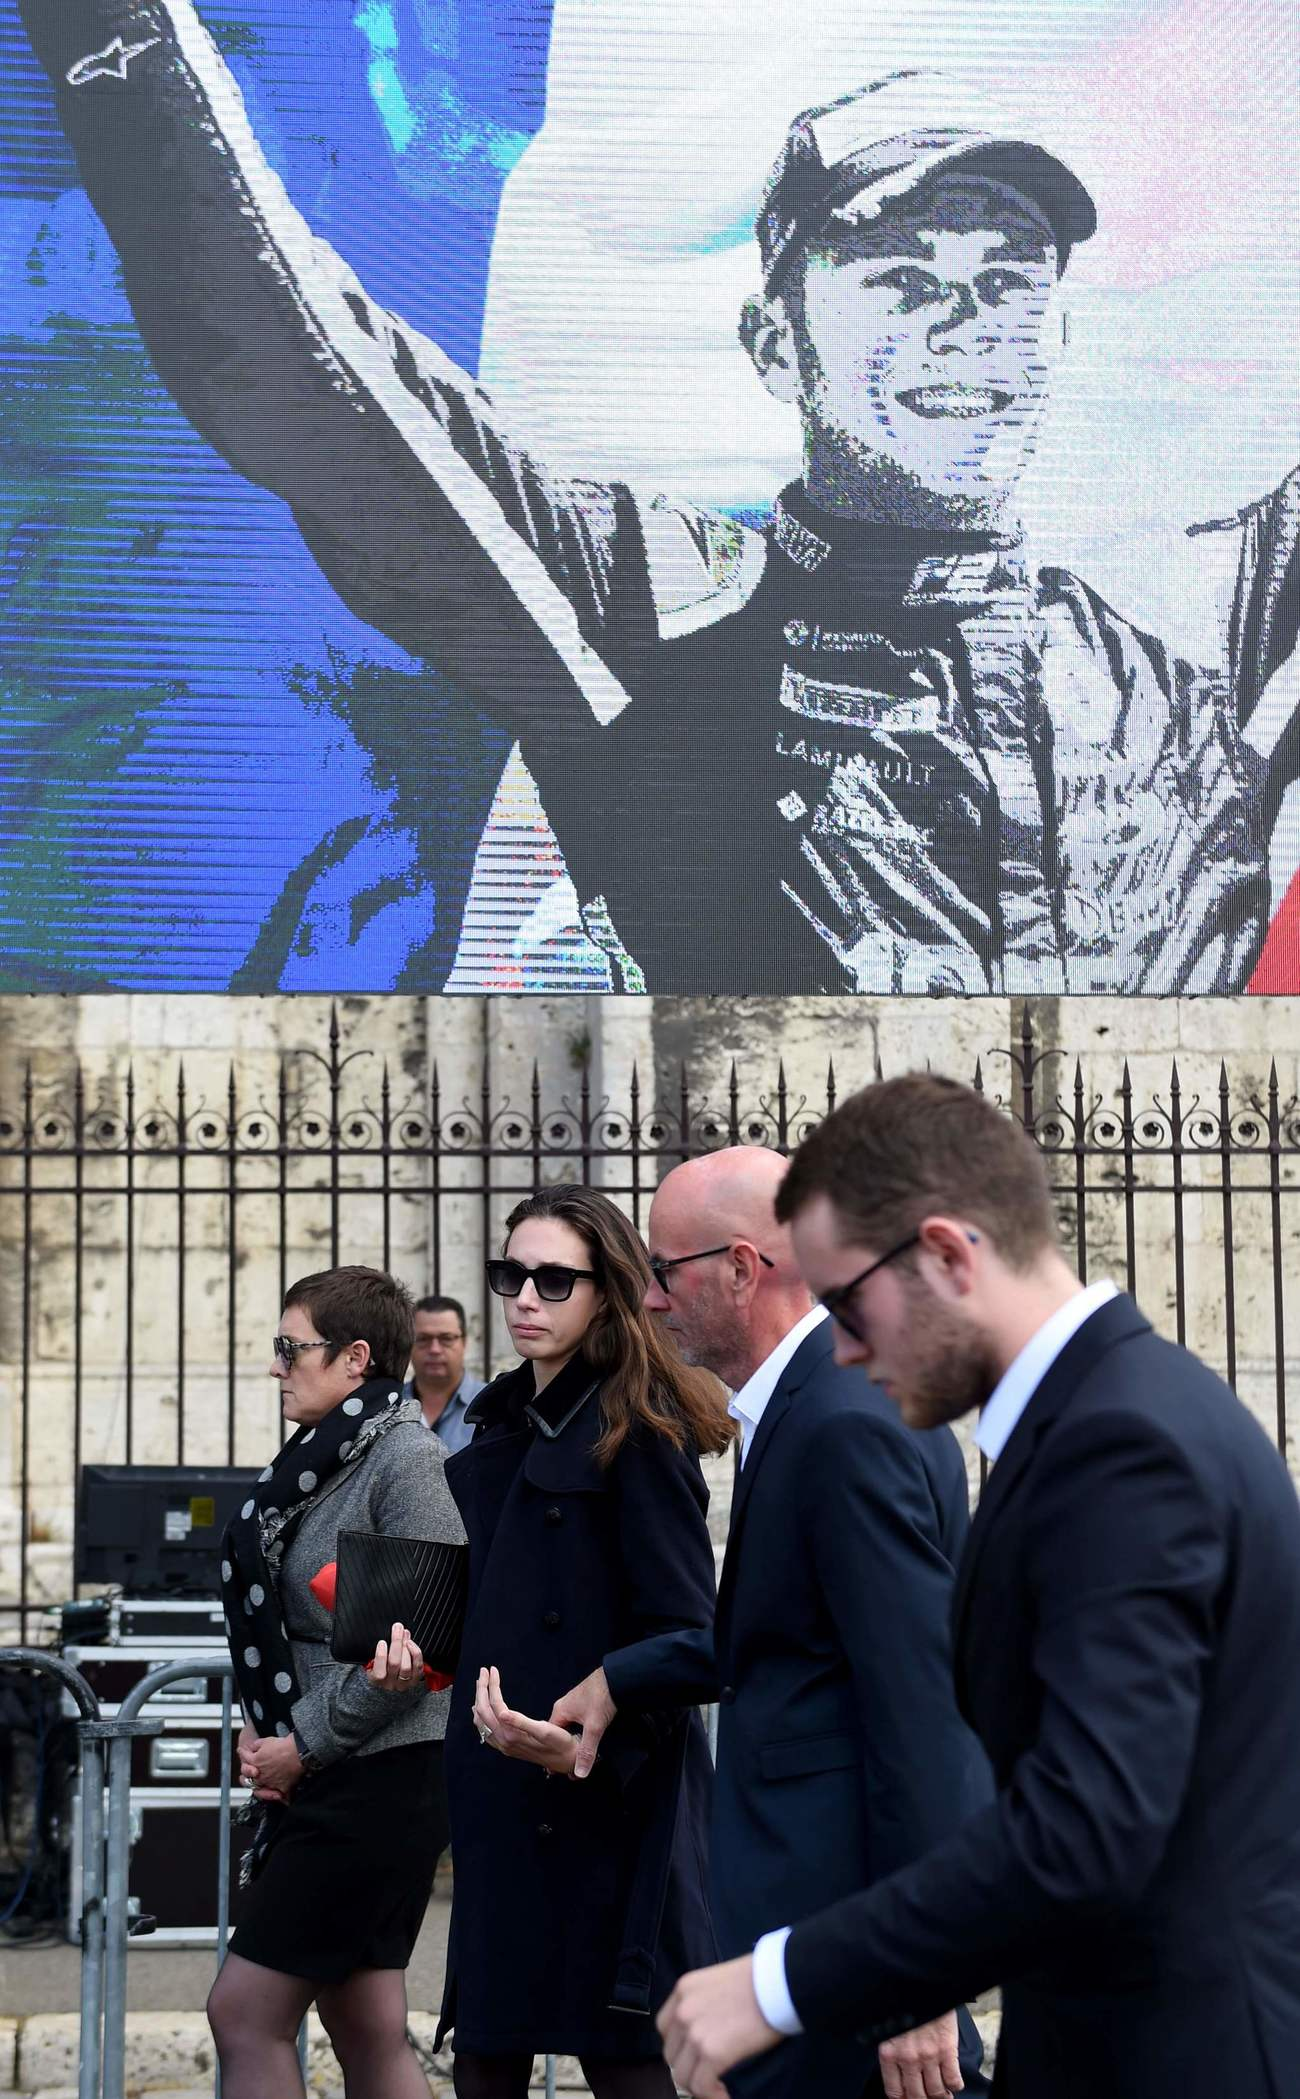 ( From L ) Late French racing driver Anthoine Hubert's relatives mother, Julie girlfriend, Francois father and Victhor brother, arrives for the funeral at the Cathedral of Notre Dame , in Chartres, on September 10, 2019. - The 22-year-old F2 driver was killed on August 31, 2019 in a crash on the Spa-Francorchamps circuit. (Photo by JEAN-FRANCOIS MONIER / AFP)